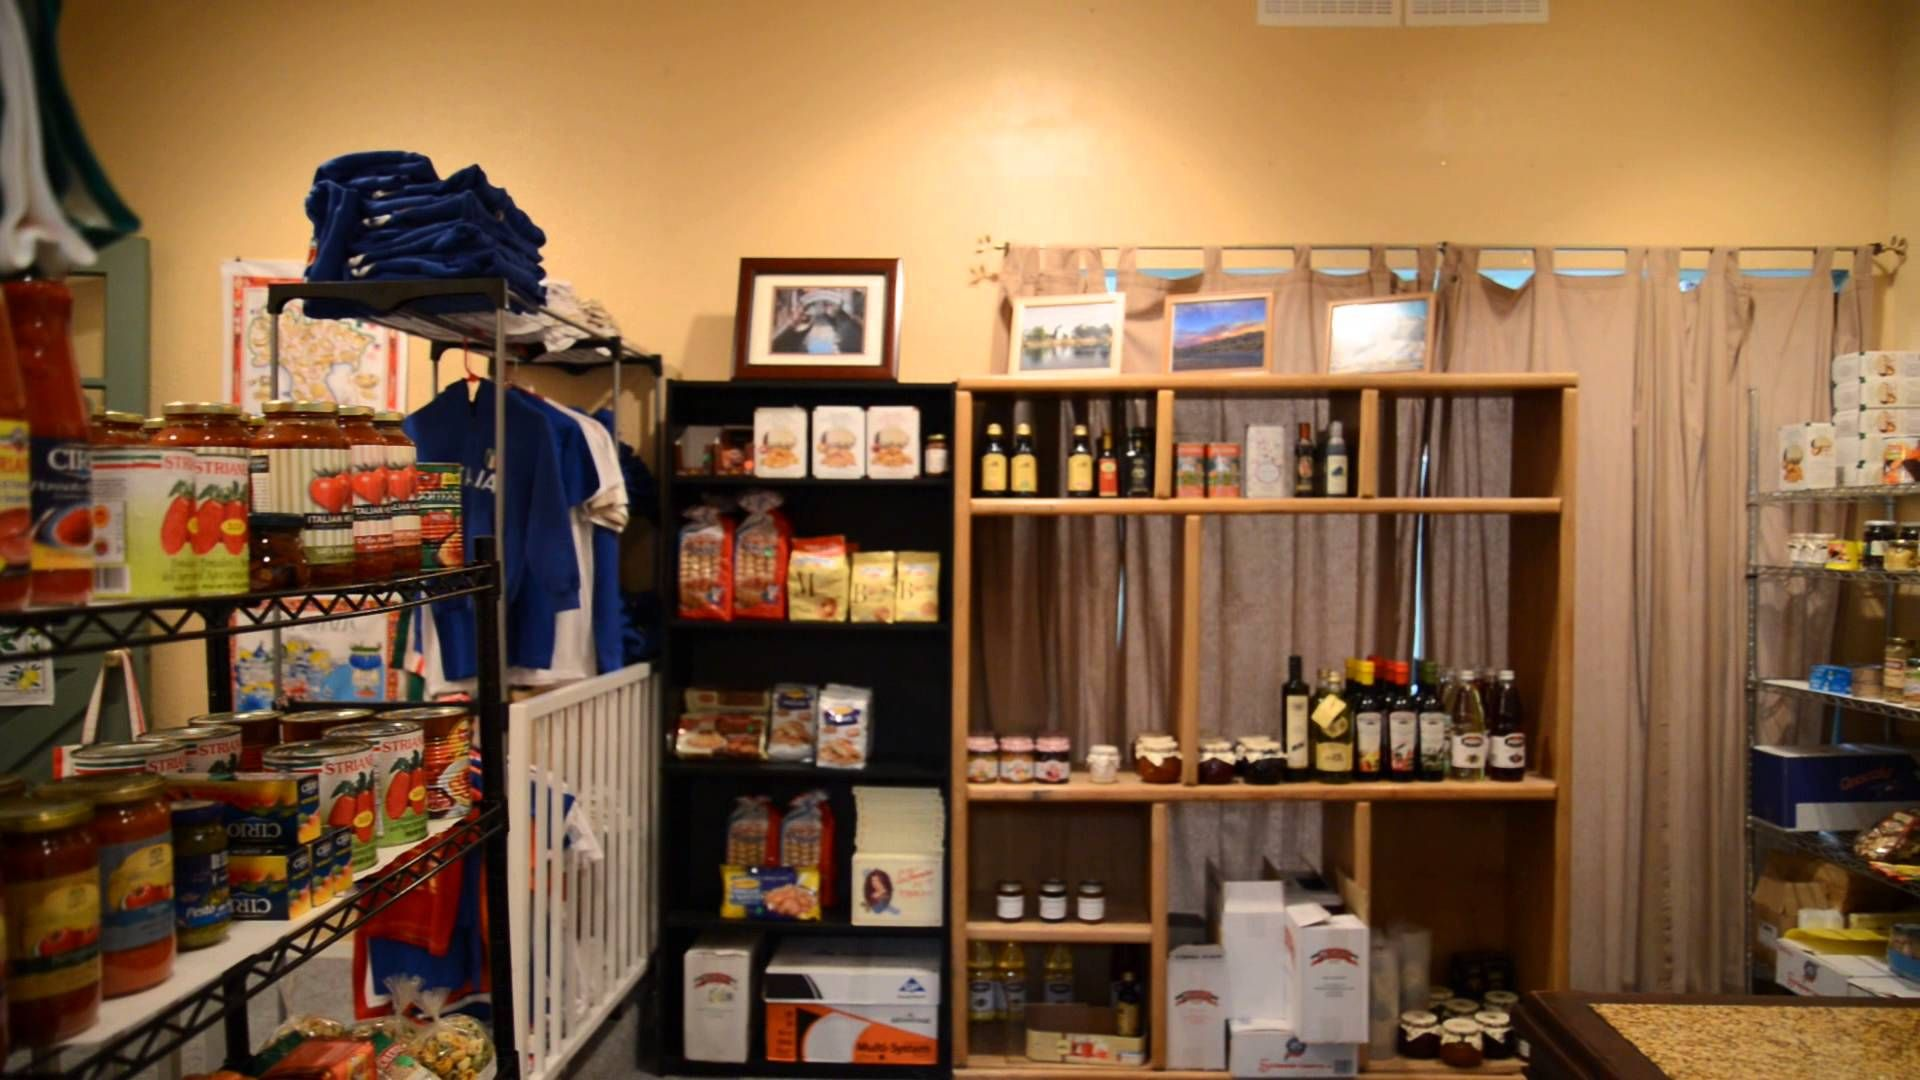 Bella Italia store in Reno, NV. This is our store, we're located at 606 W. Plumb lane suite 4, inside the Arlington Gardens Mall